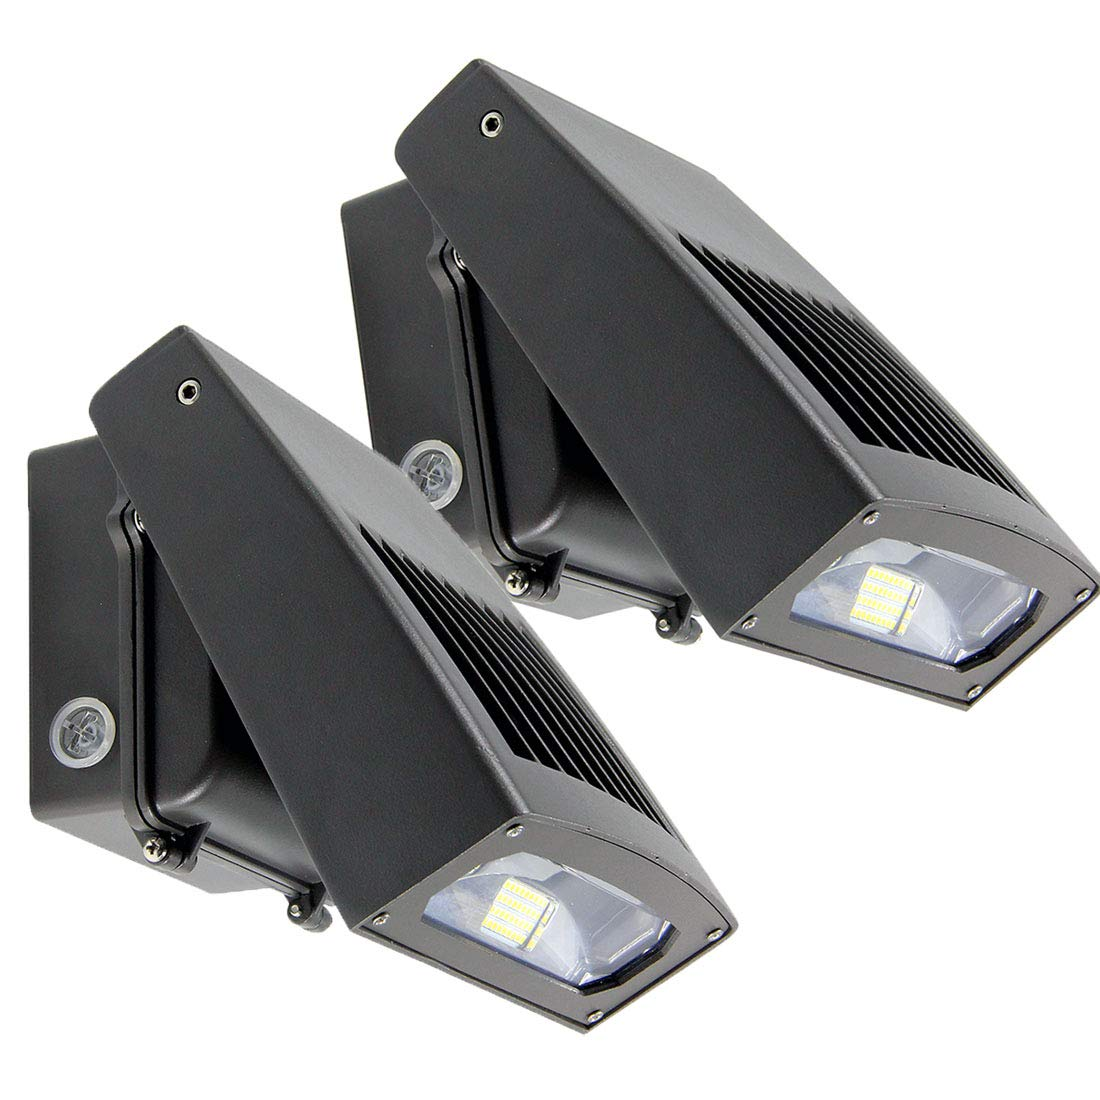 2 Pack Dakason 30w Led Wall Dusk To Dawn Quick Tip 16 Threeway Twoway Or Oneway Switch Misterfixit Photocell Adjustable Head Full Cut Off Security Light 5000k 3300lm Replaces 100 150w Hps Hid